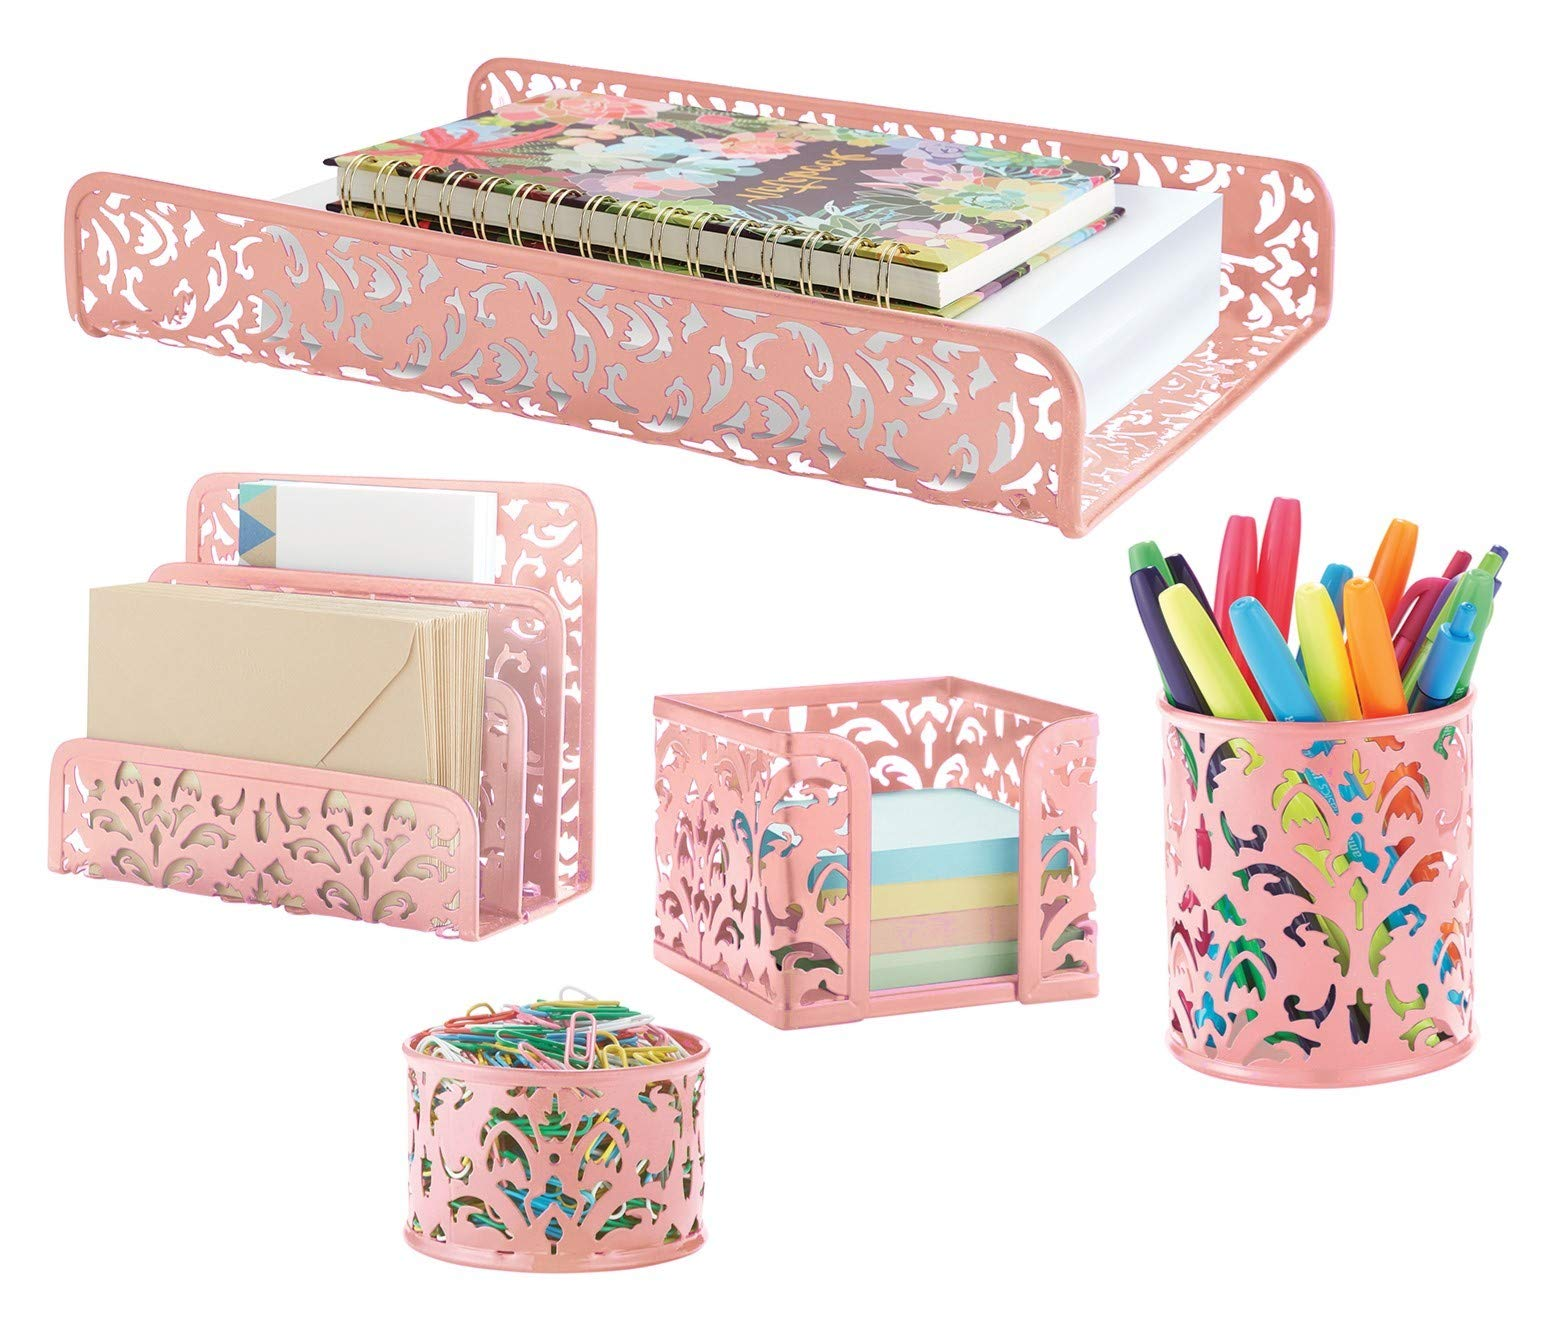 Pink 5-Piece Metal Desk Accessories, Desk Organizer & Desk Decor Set, Cute Office Decor Provides Great Office Organization for Women or Room Decor for Teen Girls by MissionMax